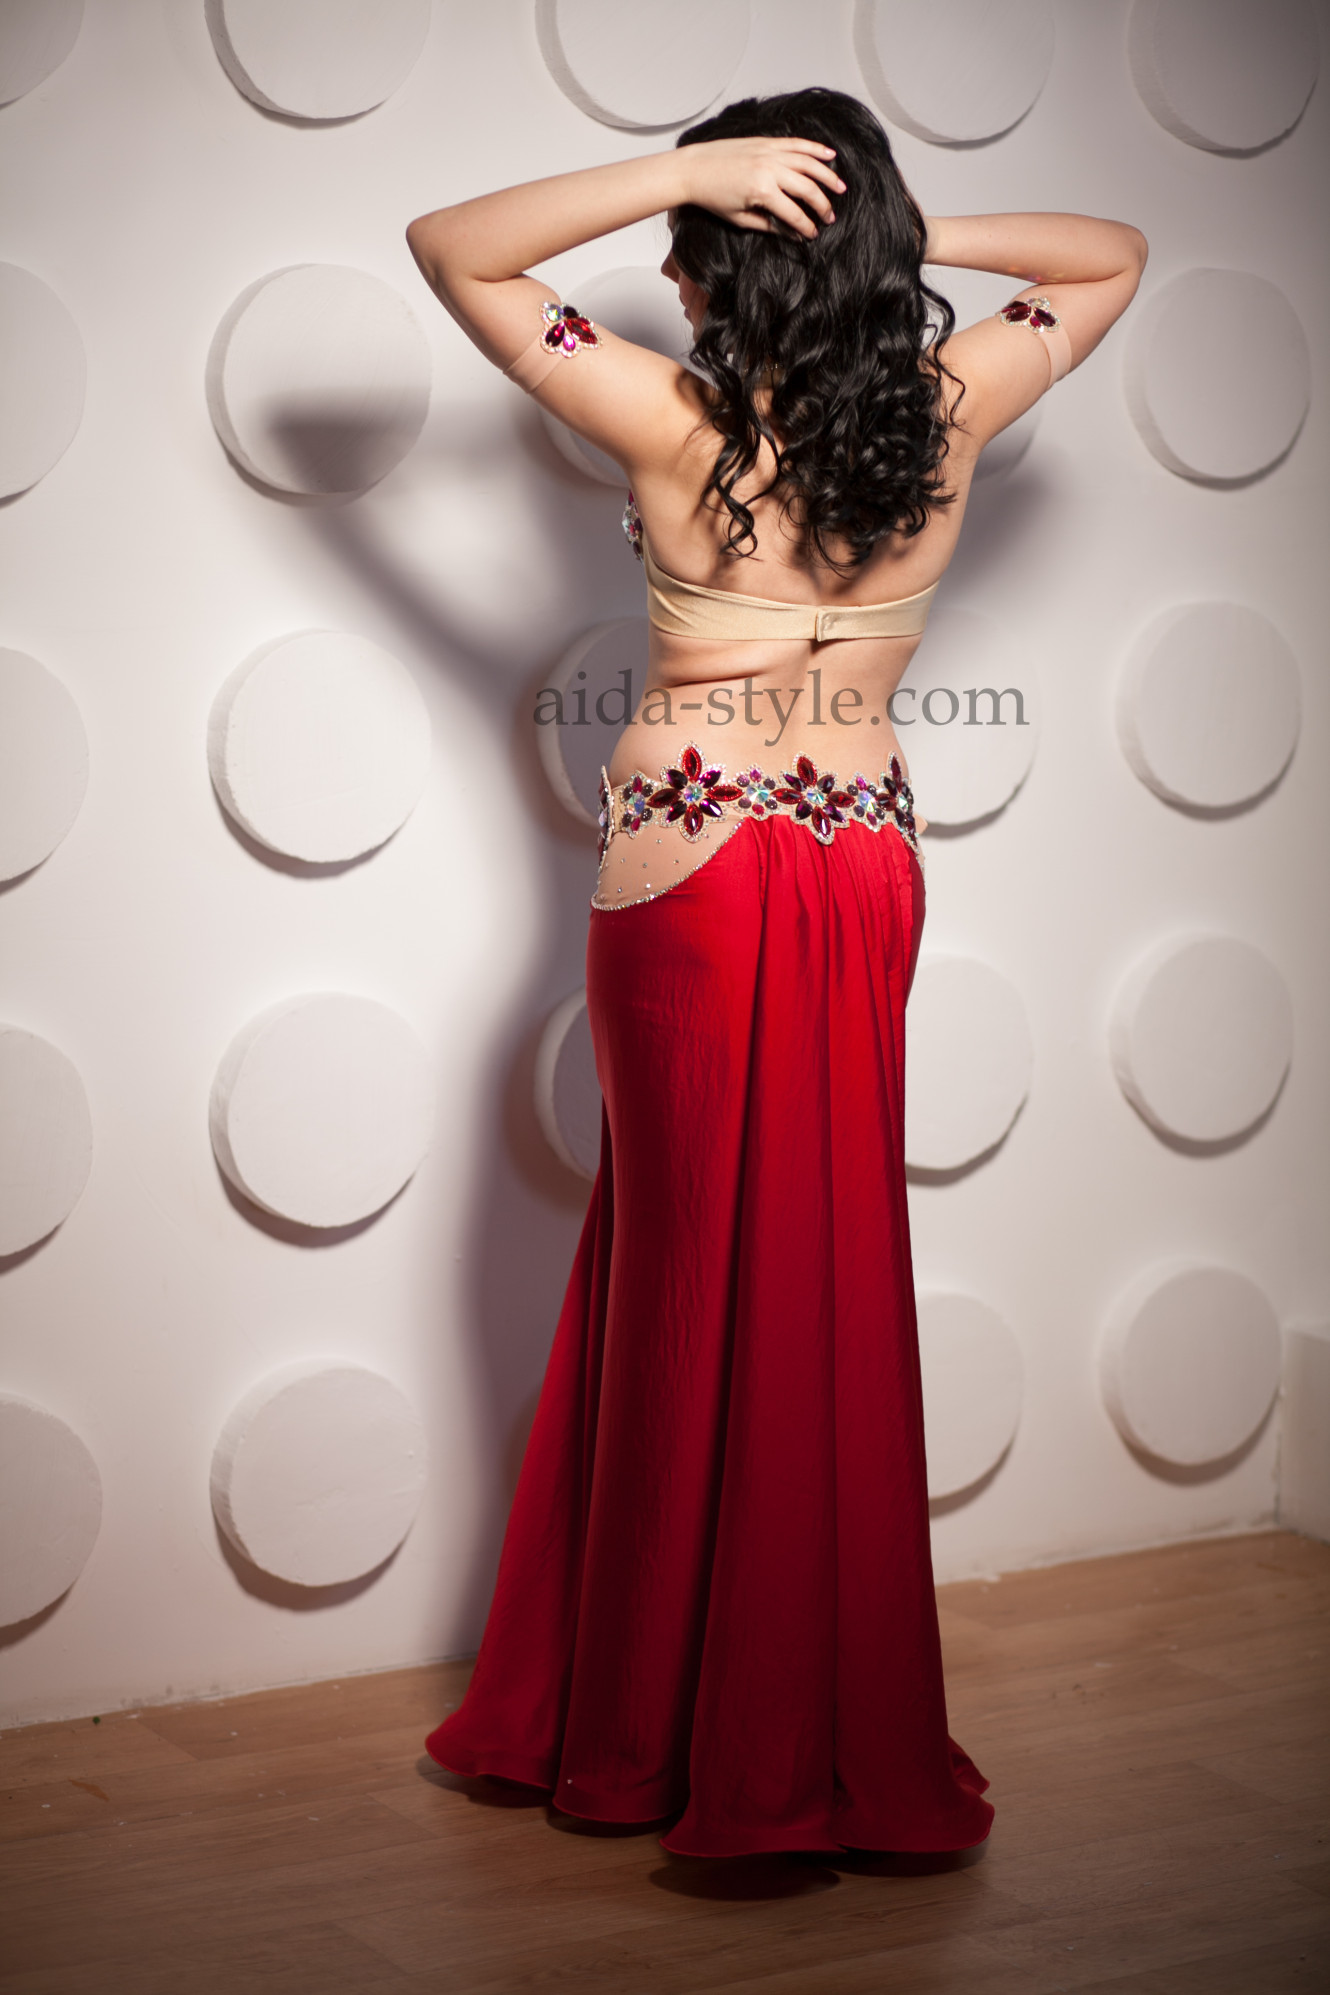 Professional belly dance costume with bright colored stones on bra and belt